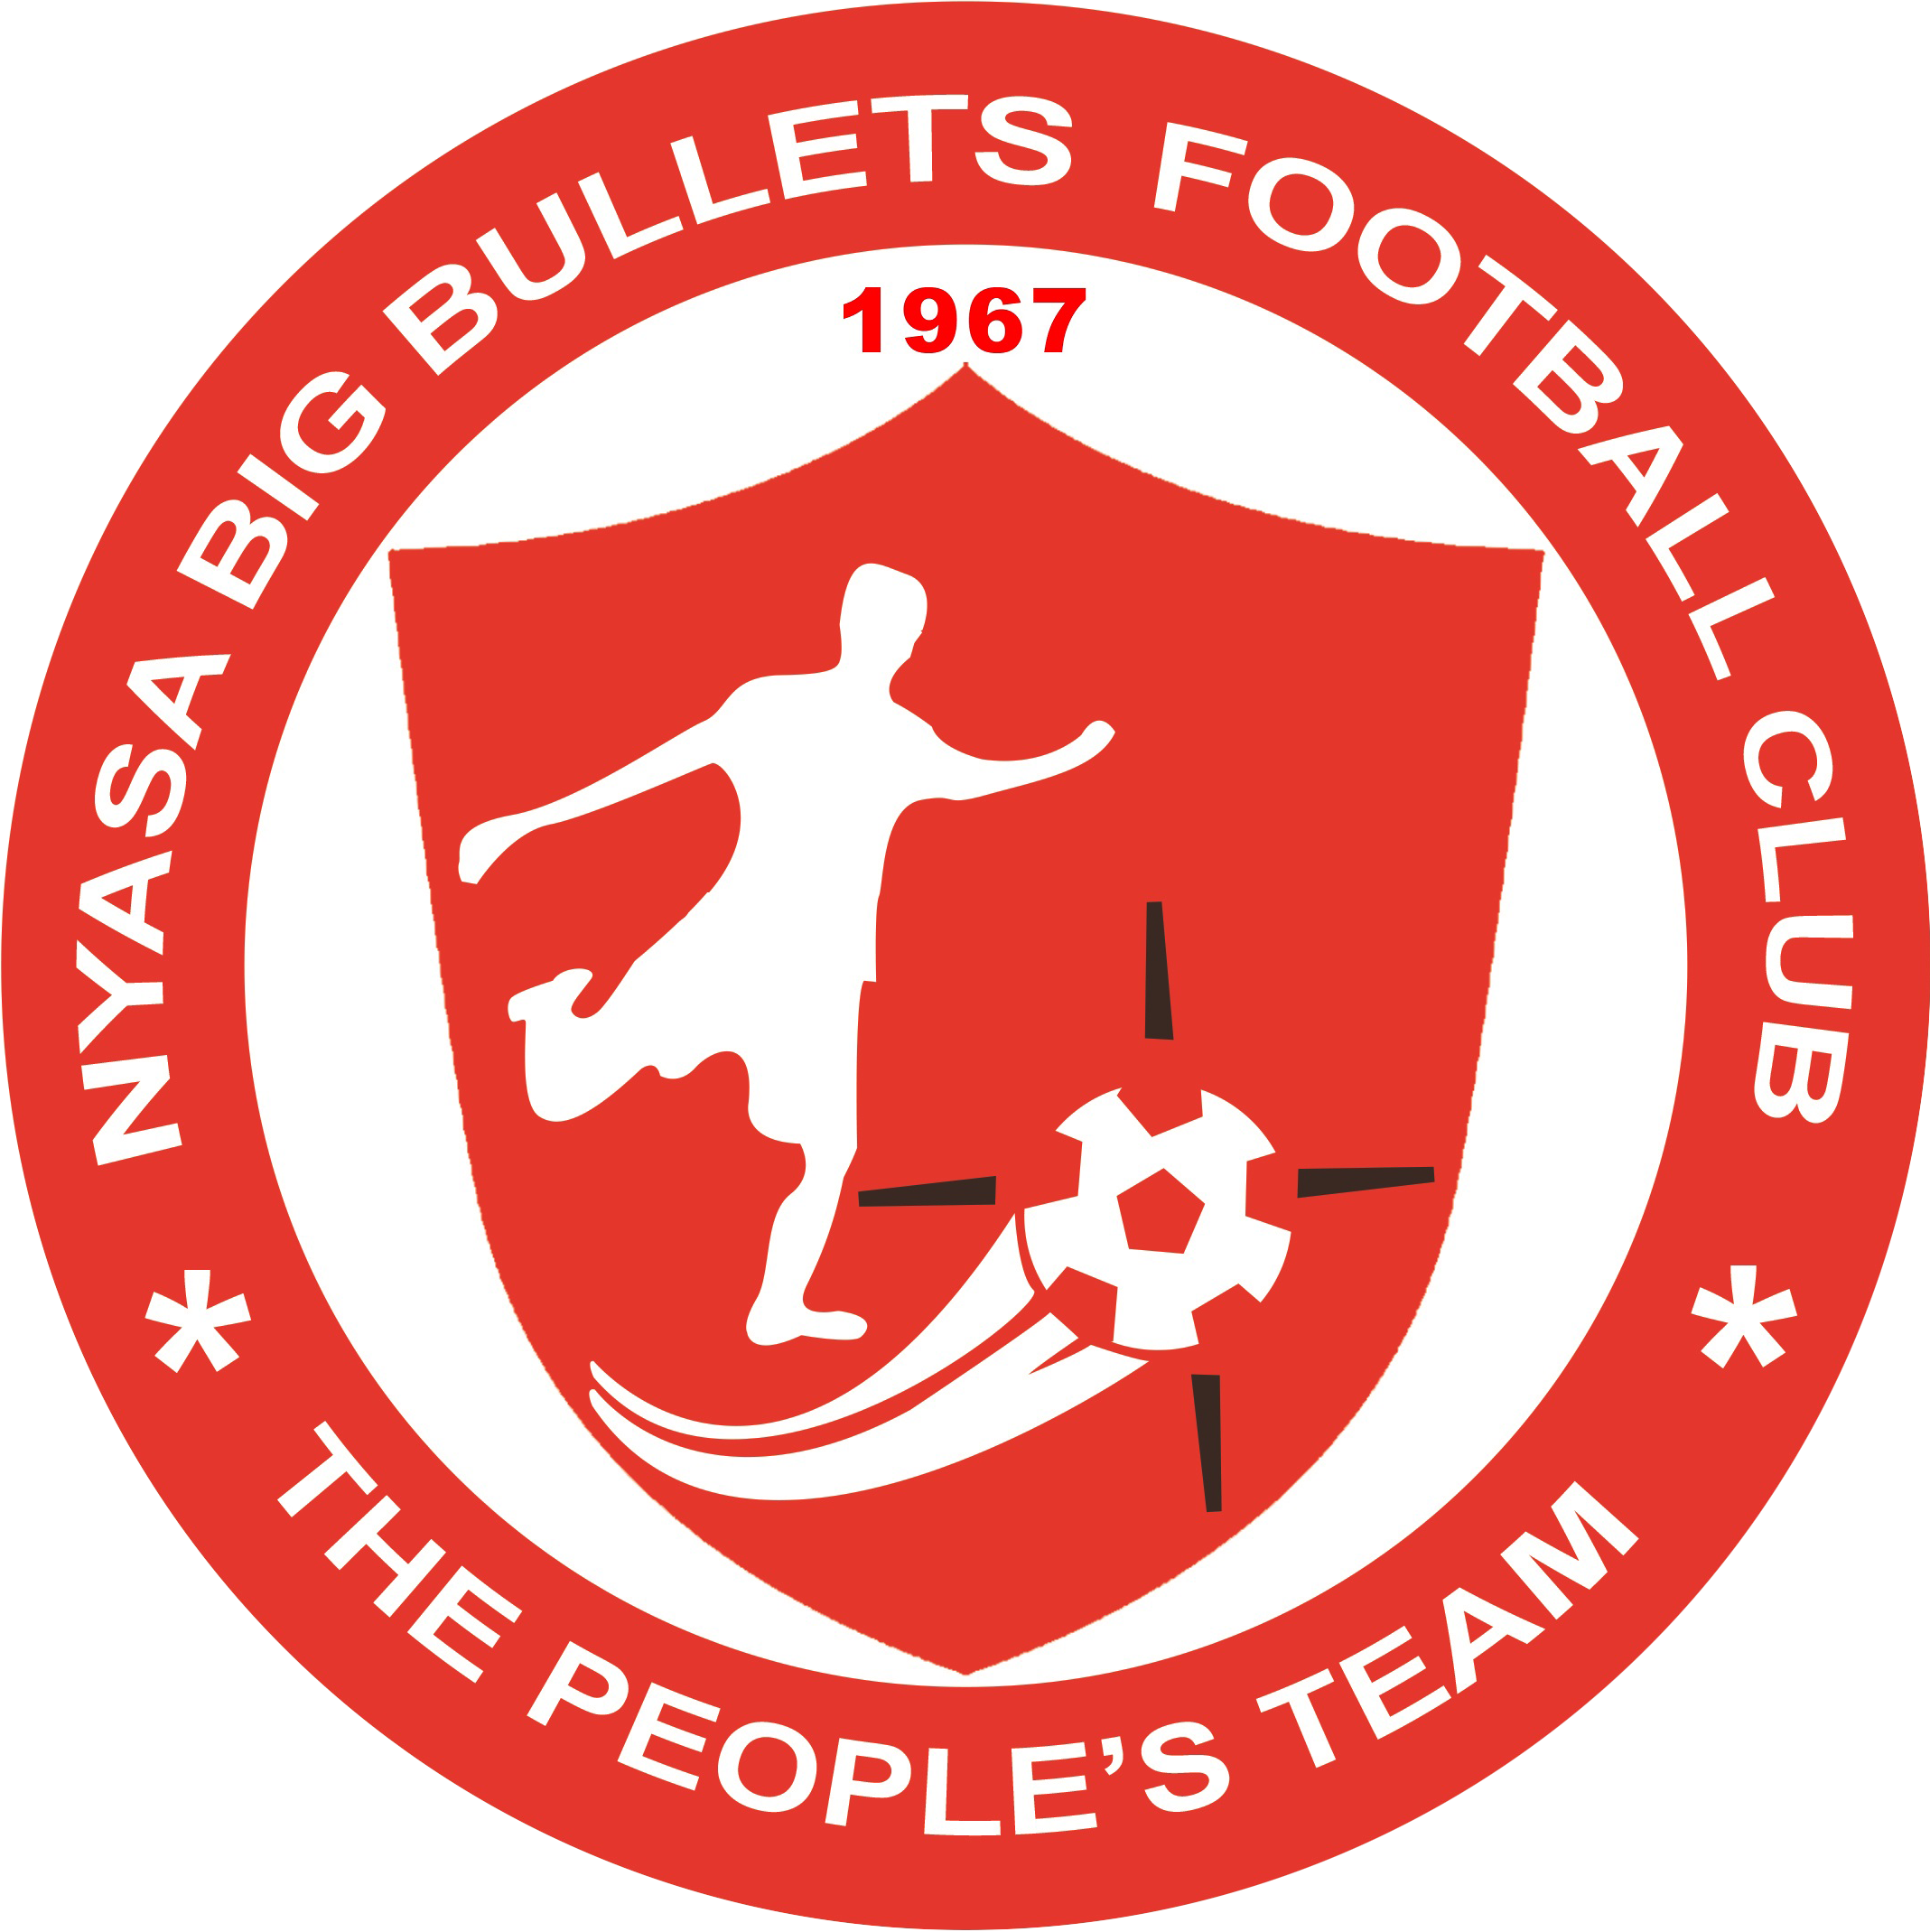 Big Bullets team logo